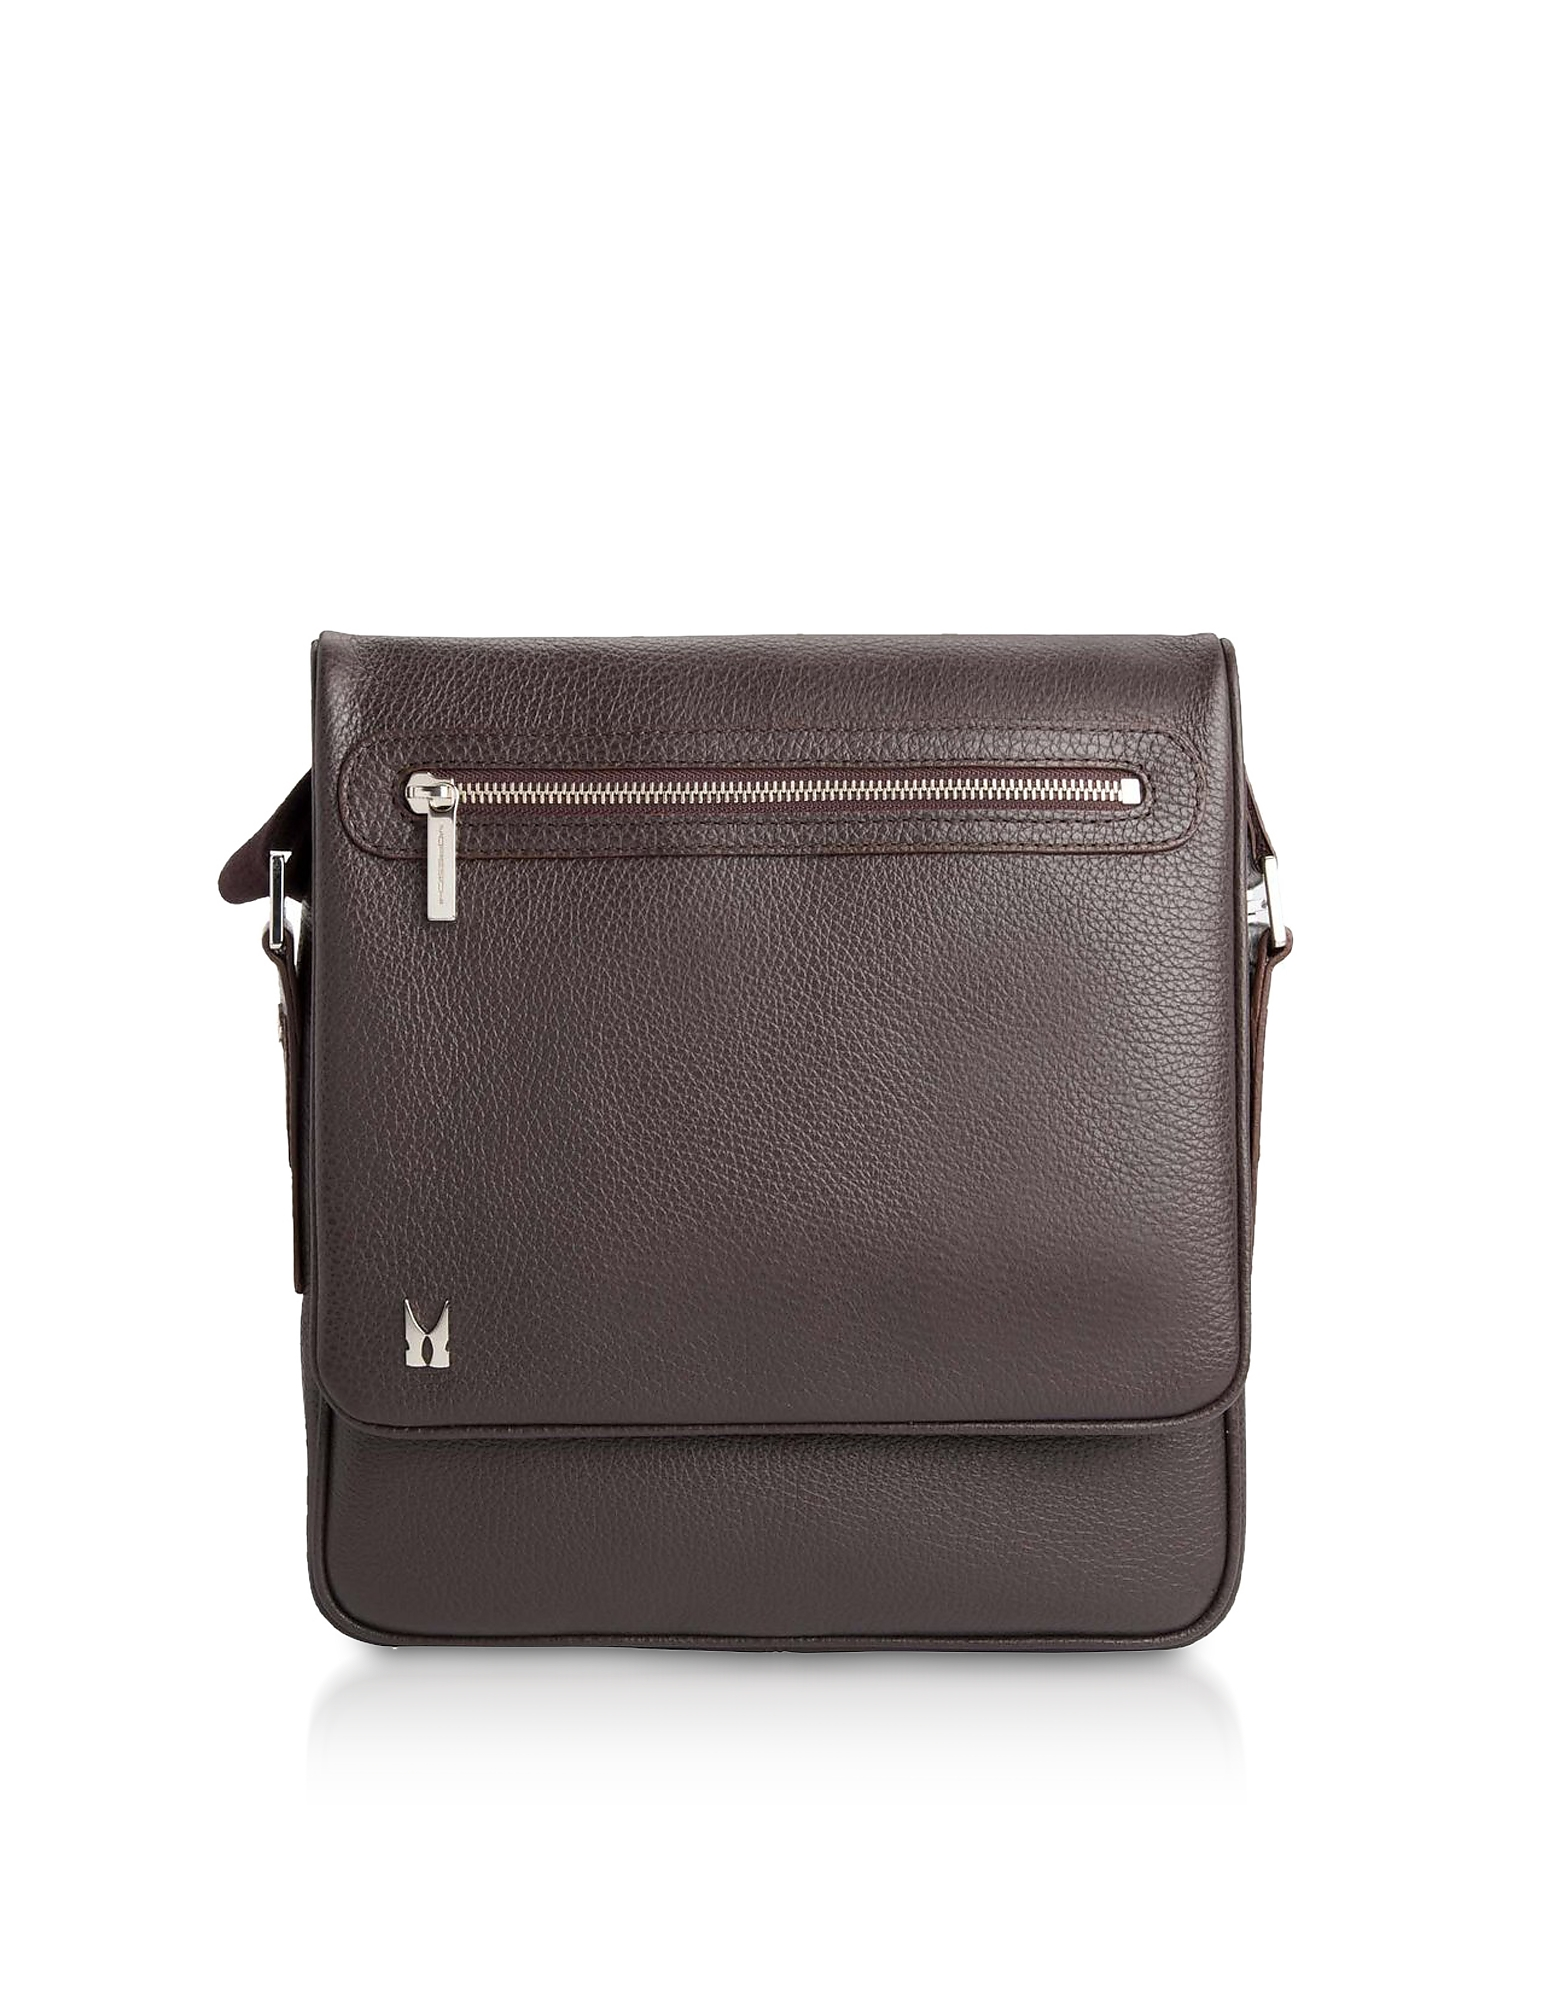 Moreschi Designer Briefcases, Printed Leather Messenger Bag